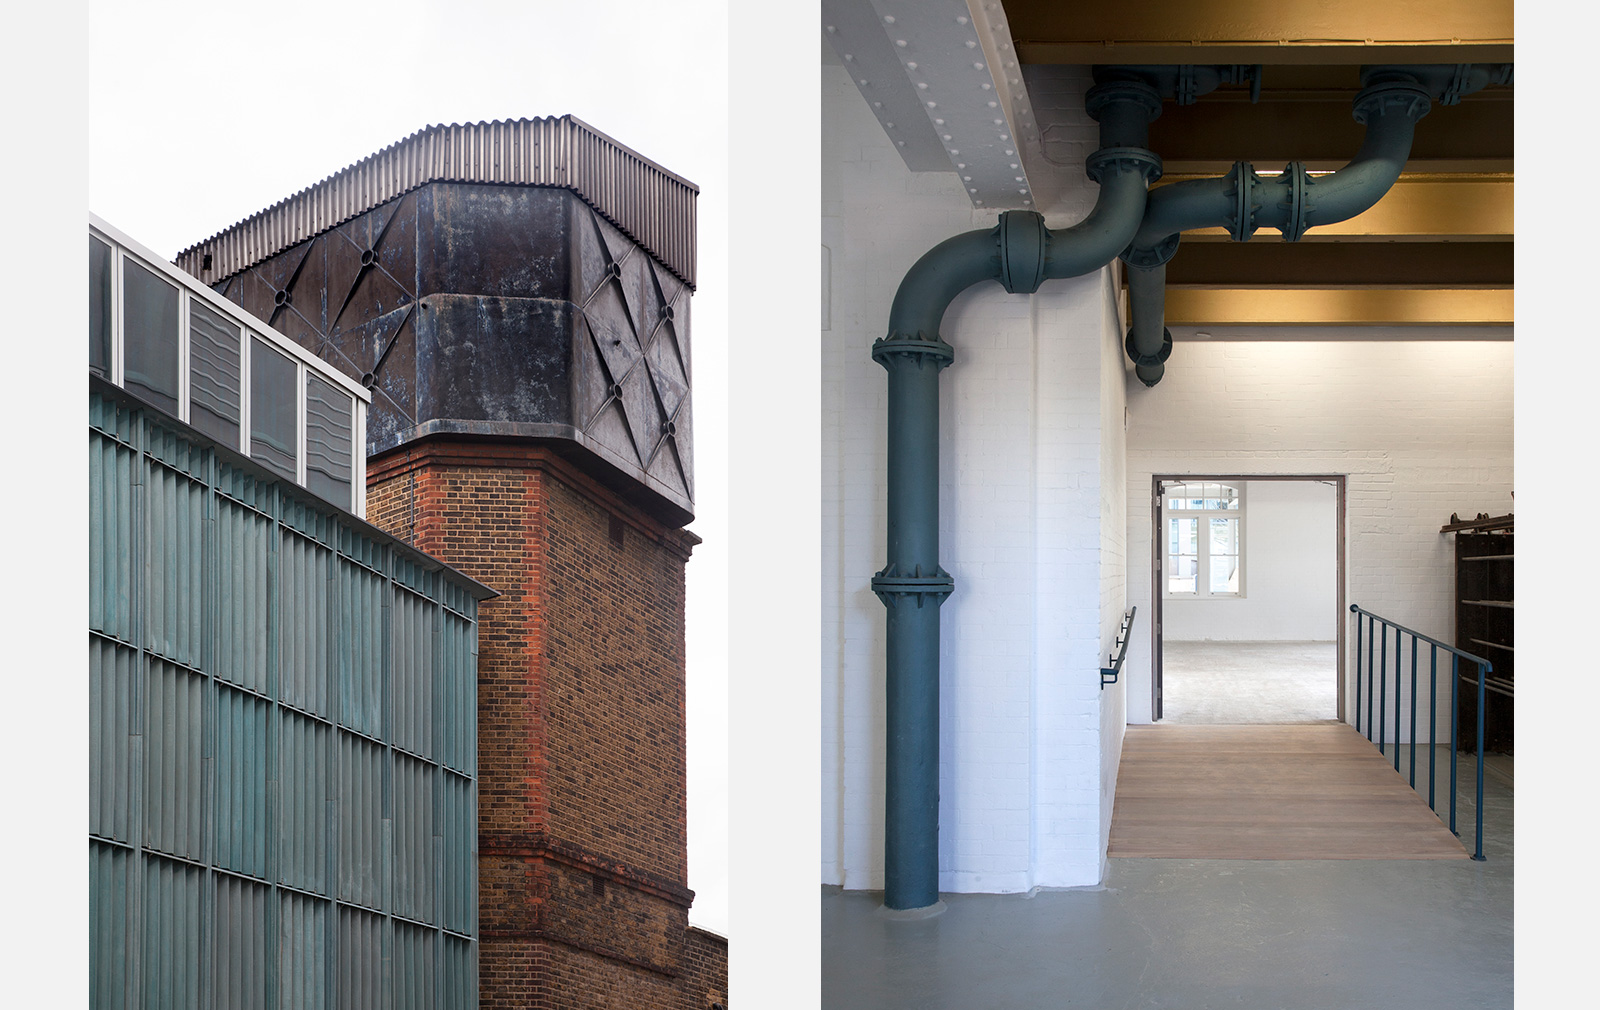 Goldsmiths Centre for Contemporary Art designed by Assemble